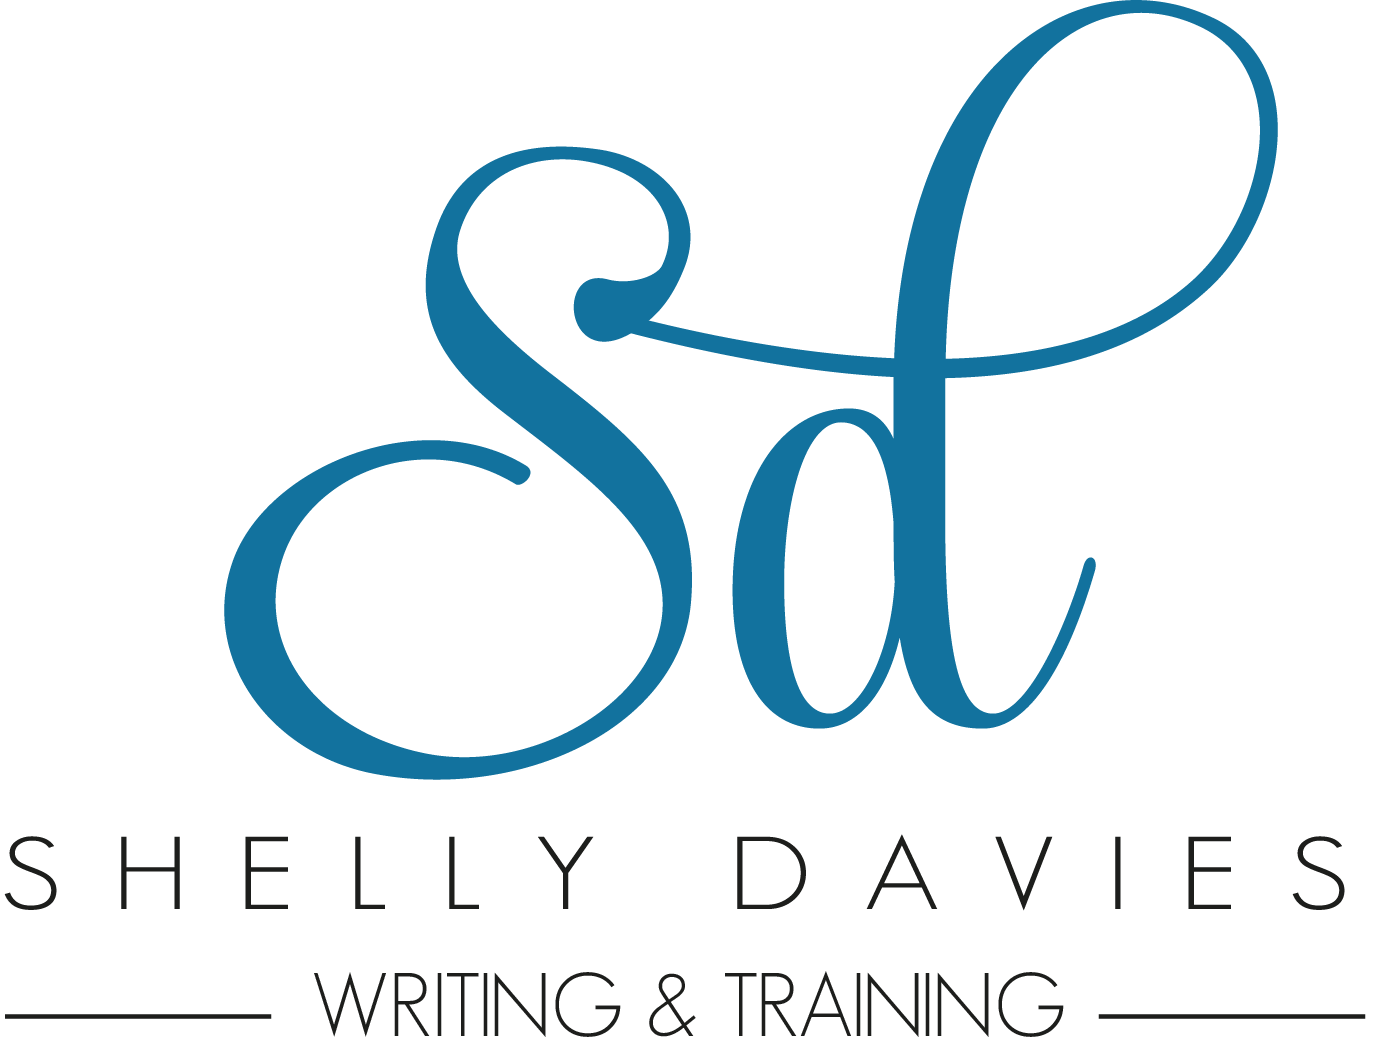 Logo of Shelly Davies - Writing & Training